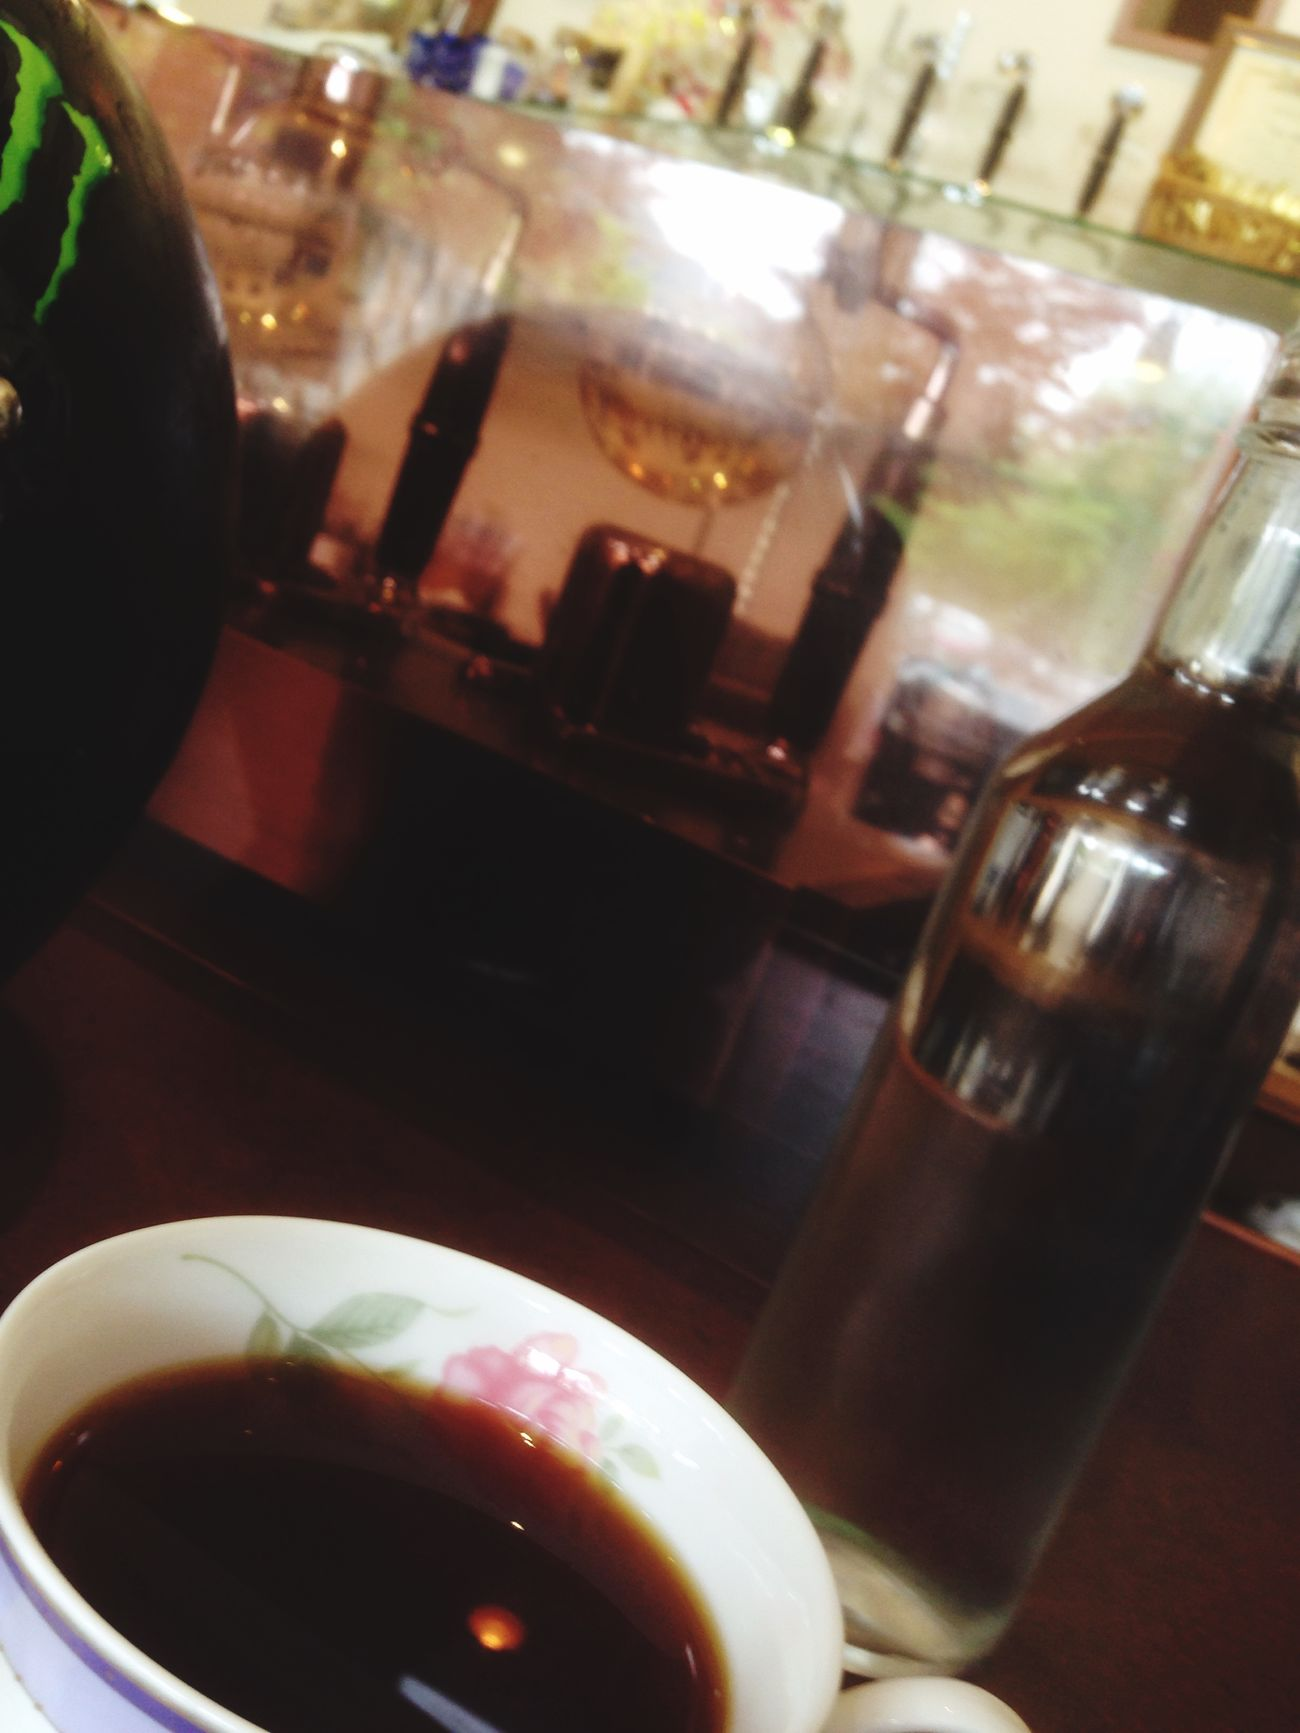 Relaxing Coffee あなどれない…馬いコーヒーを頂きました^ ^ Quality Time